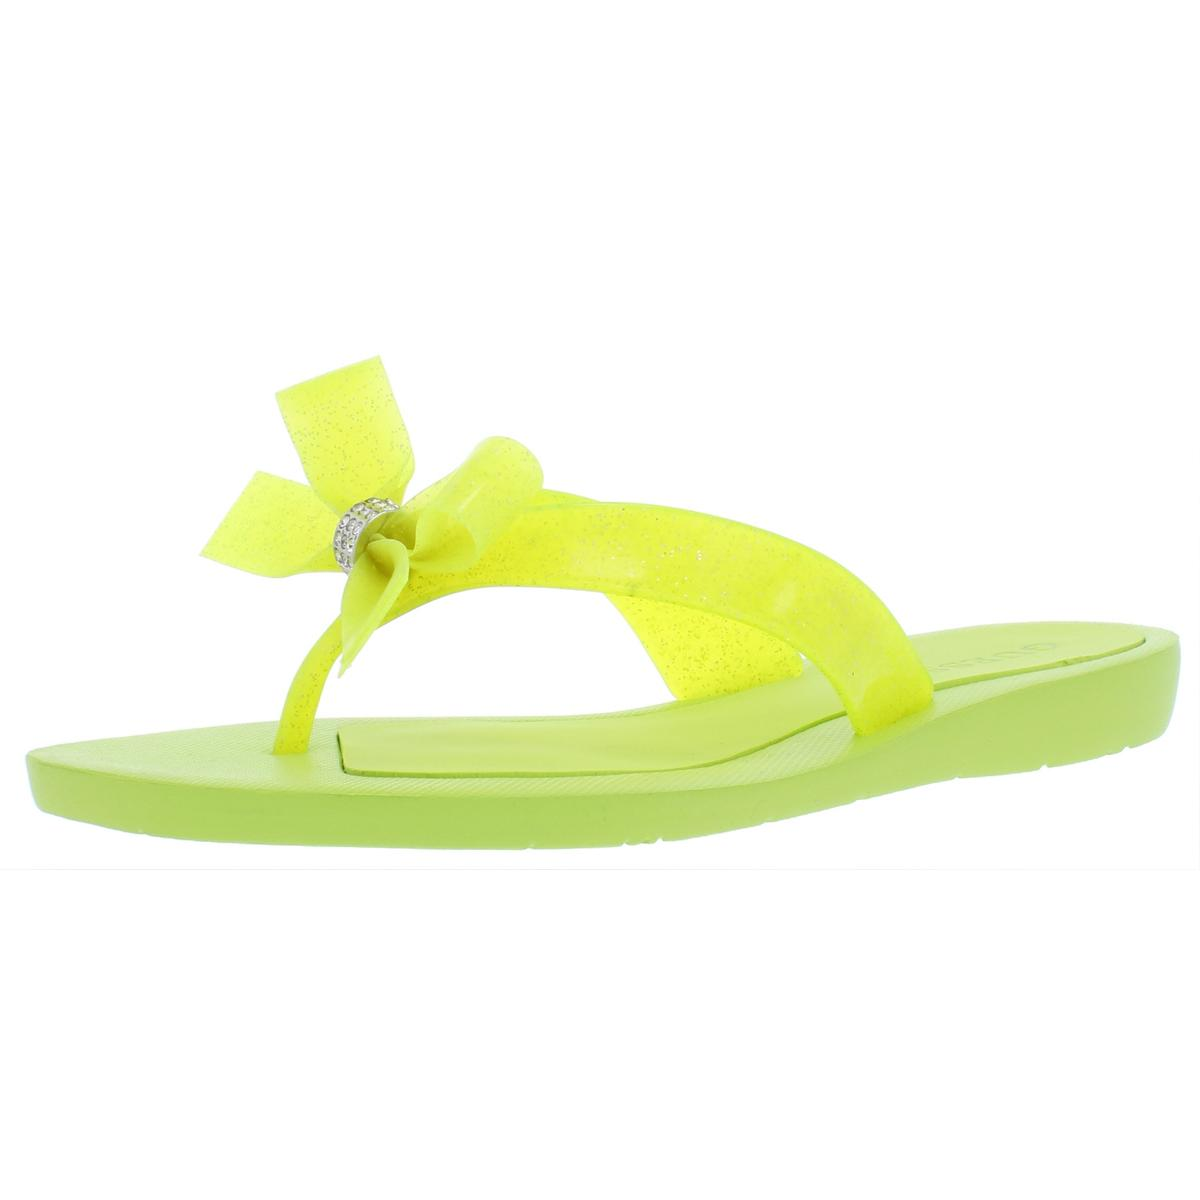 422f97afc1fb2e GUESS Womens Tutu 9 Yellow Bow Flats Flip-flops Sandals 6 Medium (b ...